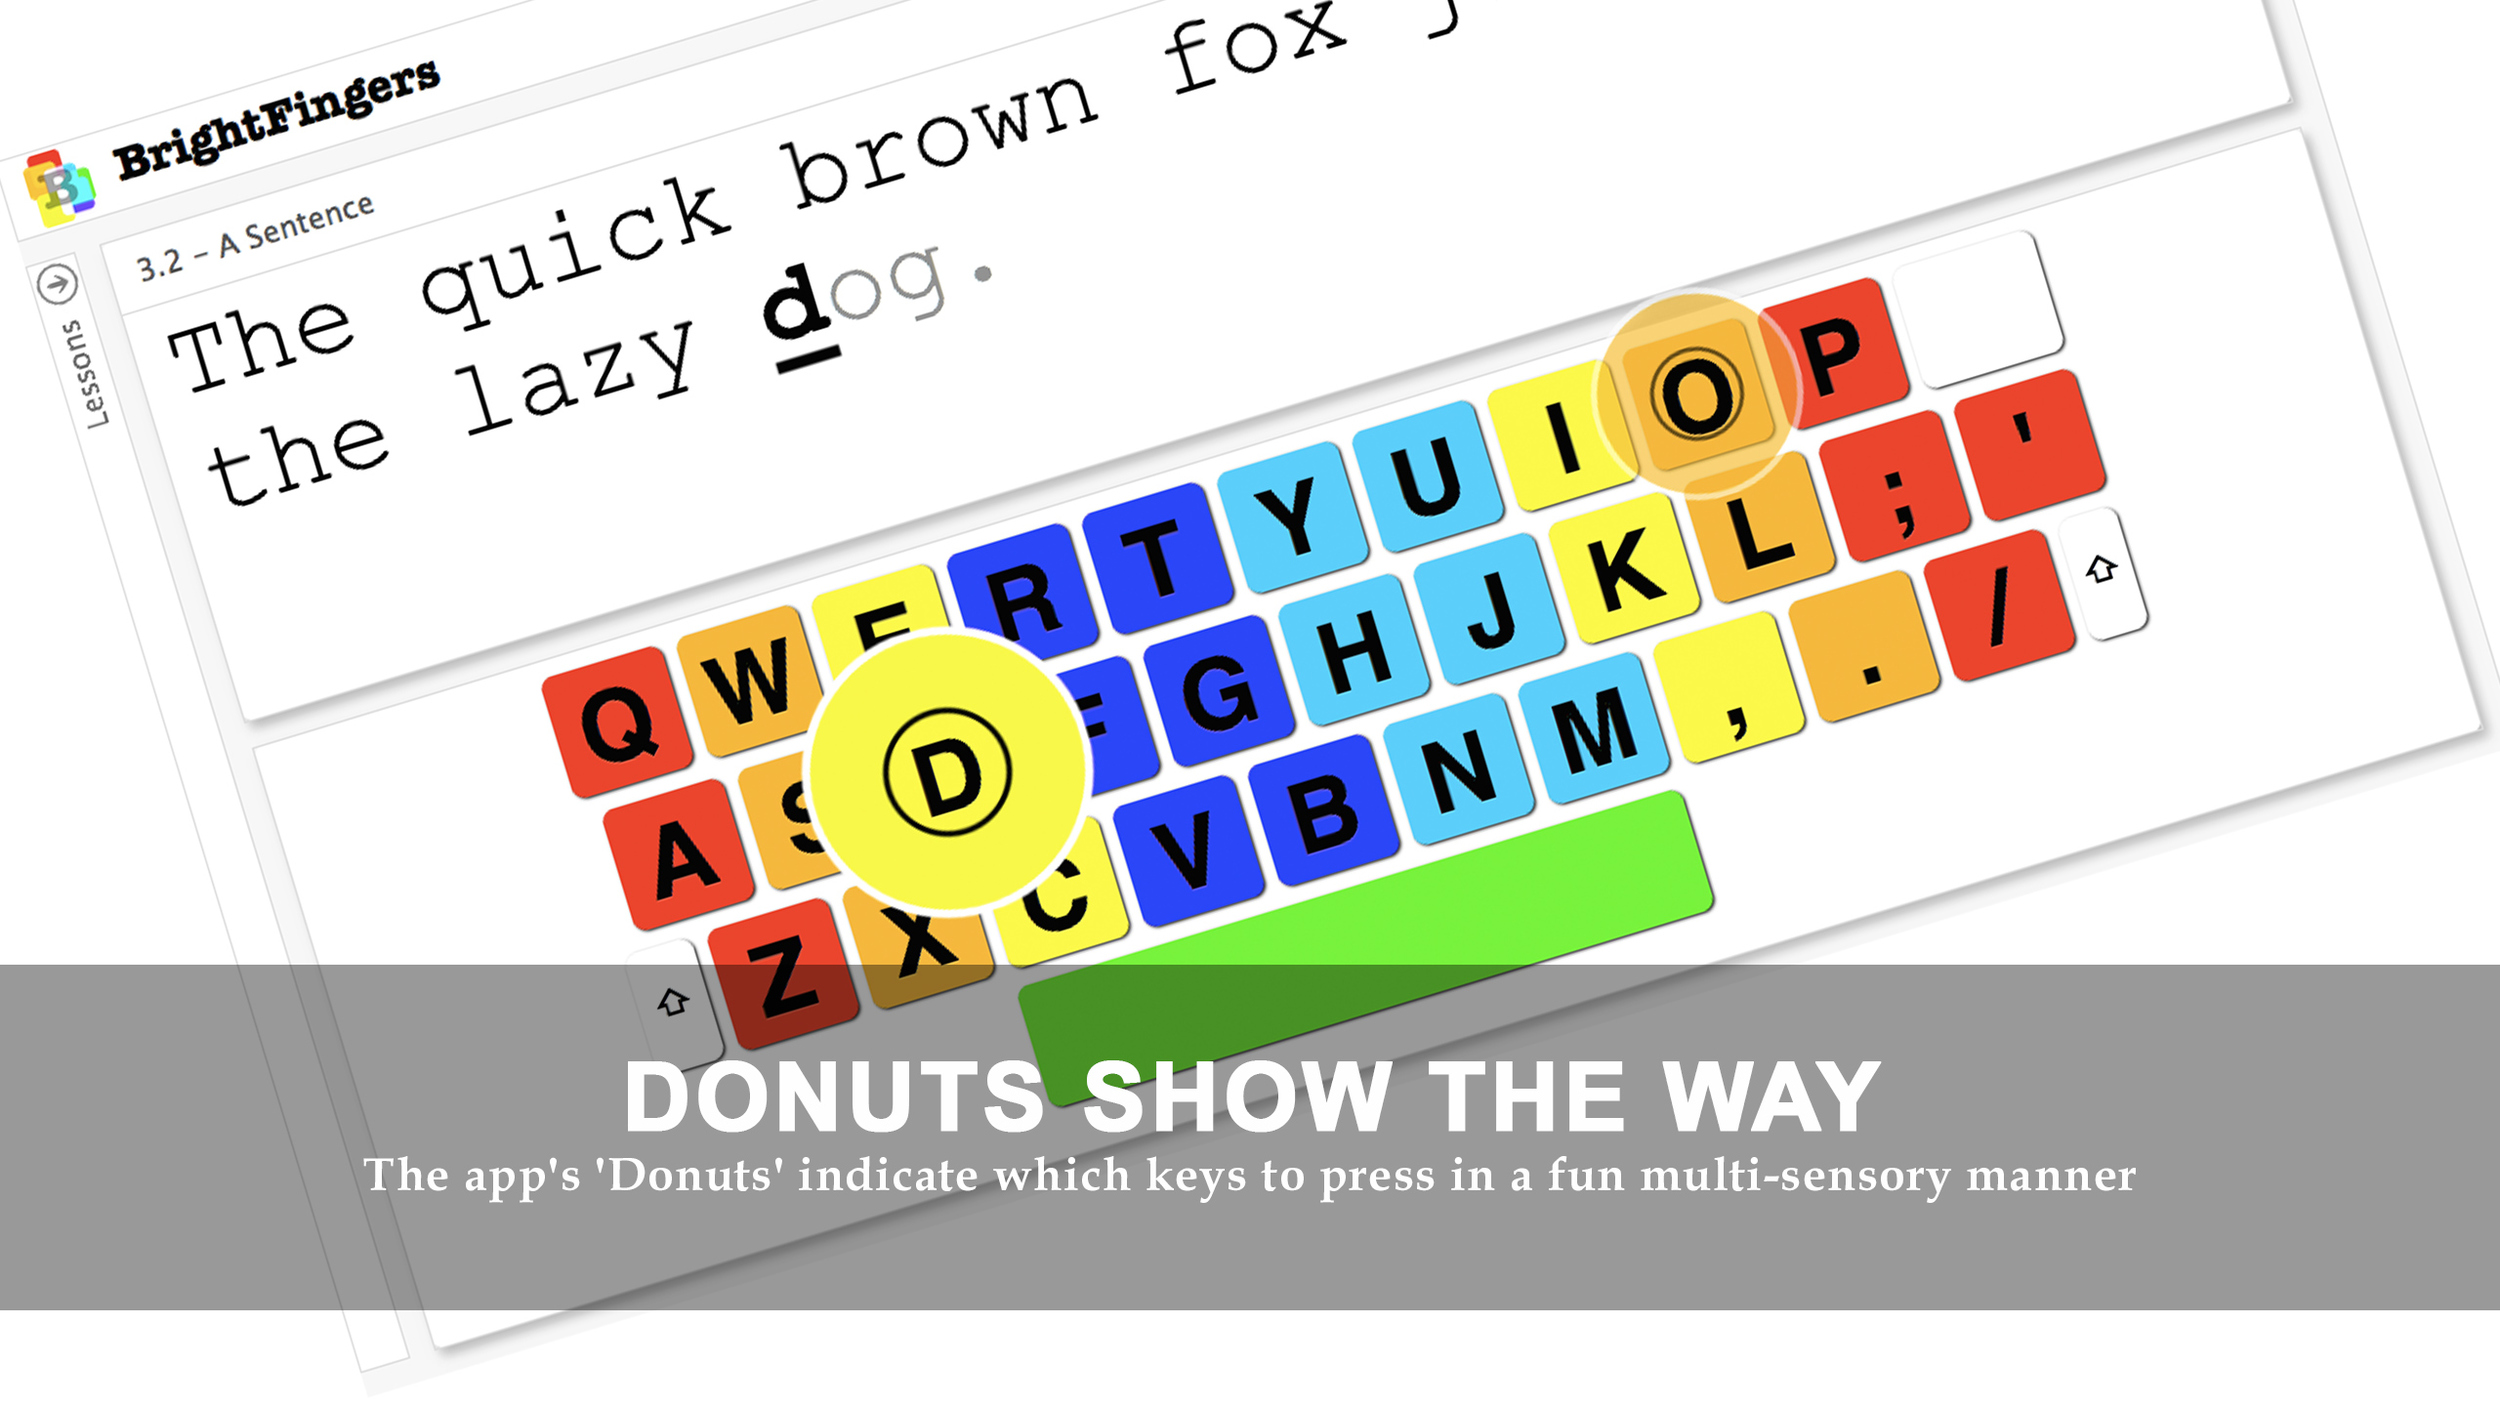 Donuts-show-the-way-v4.jpg